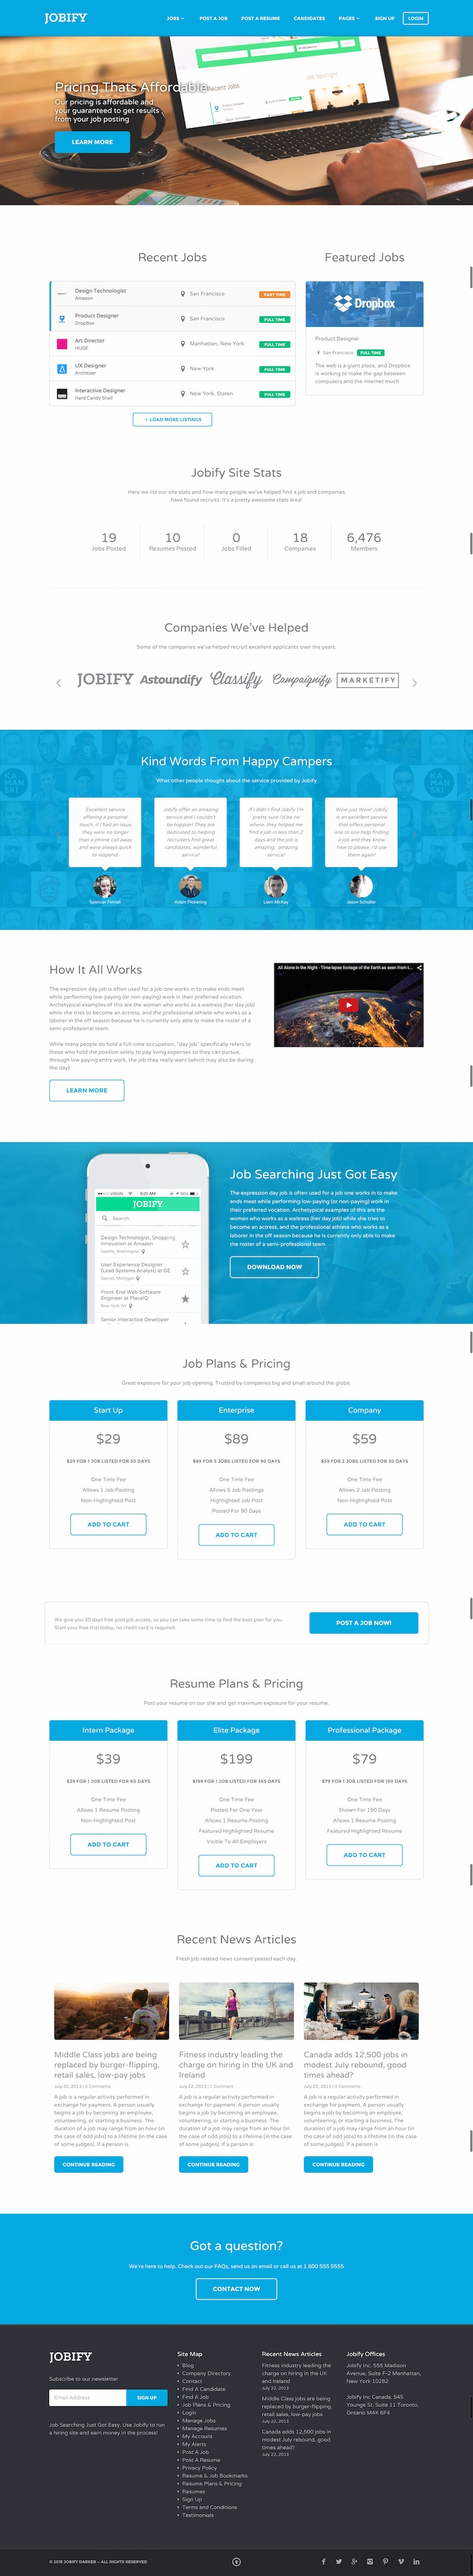 jobify-wordpress-theme